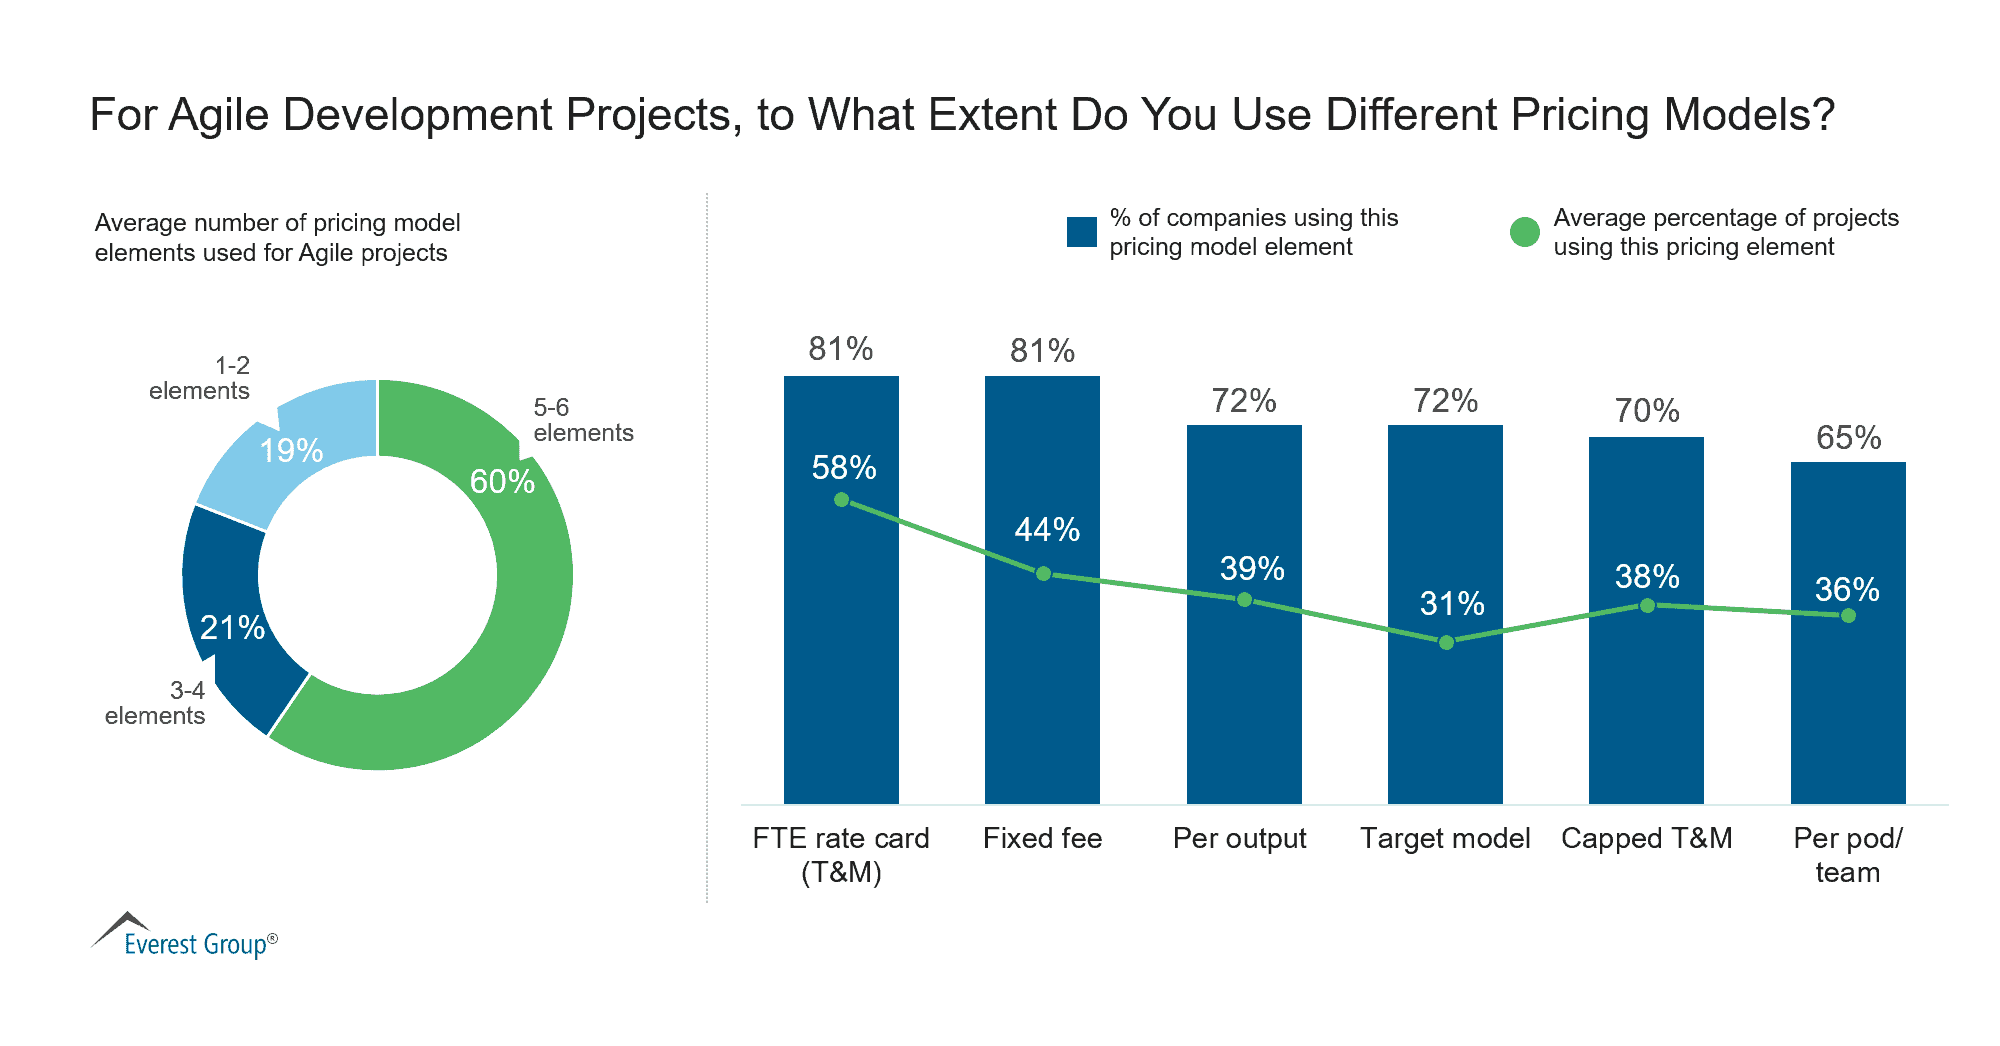 For Agile Development Projects, to What Extent Do You Use Different Pricing Models